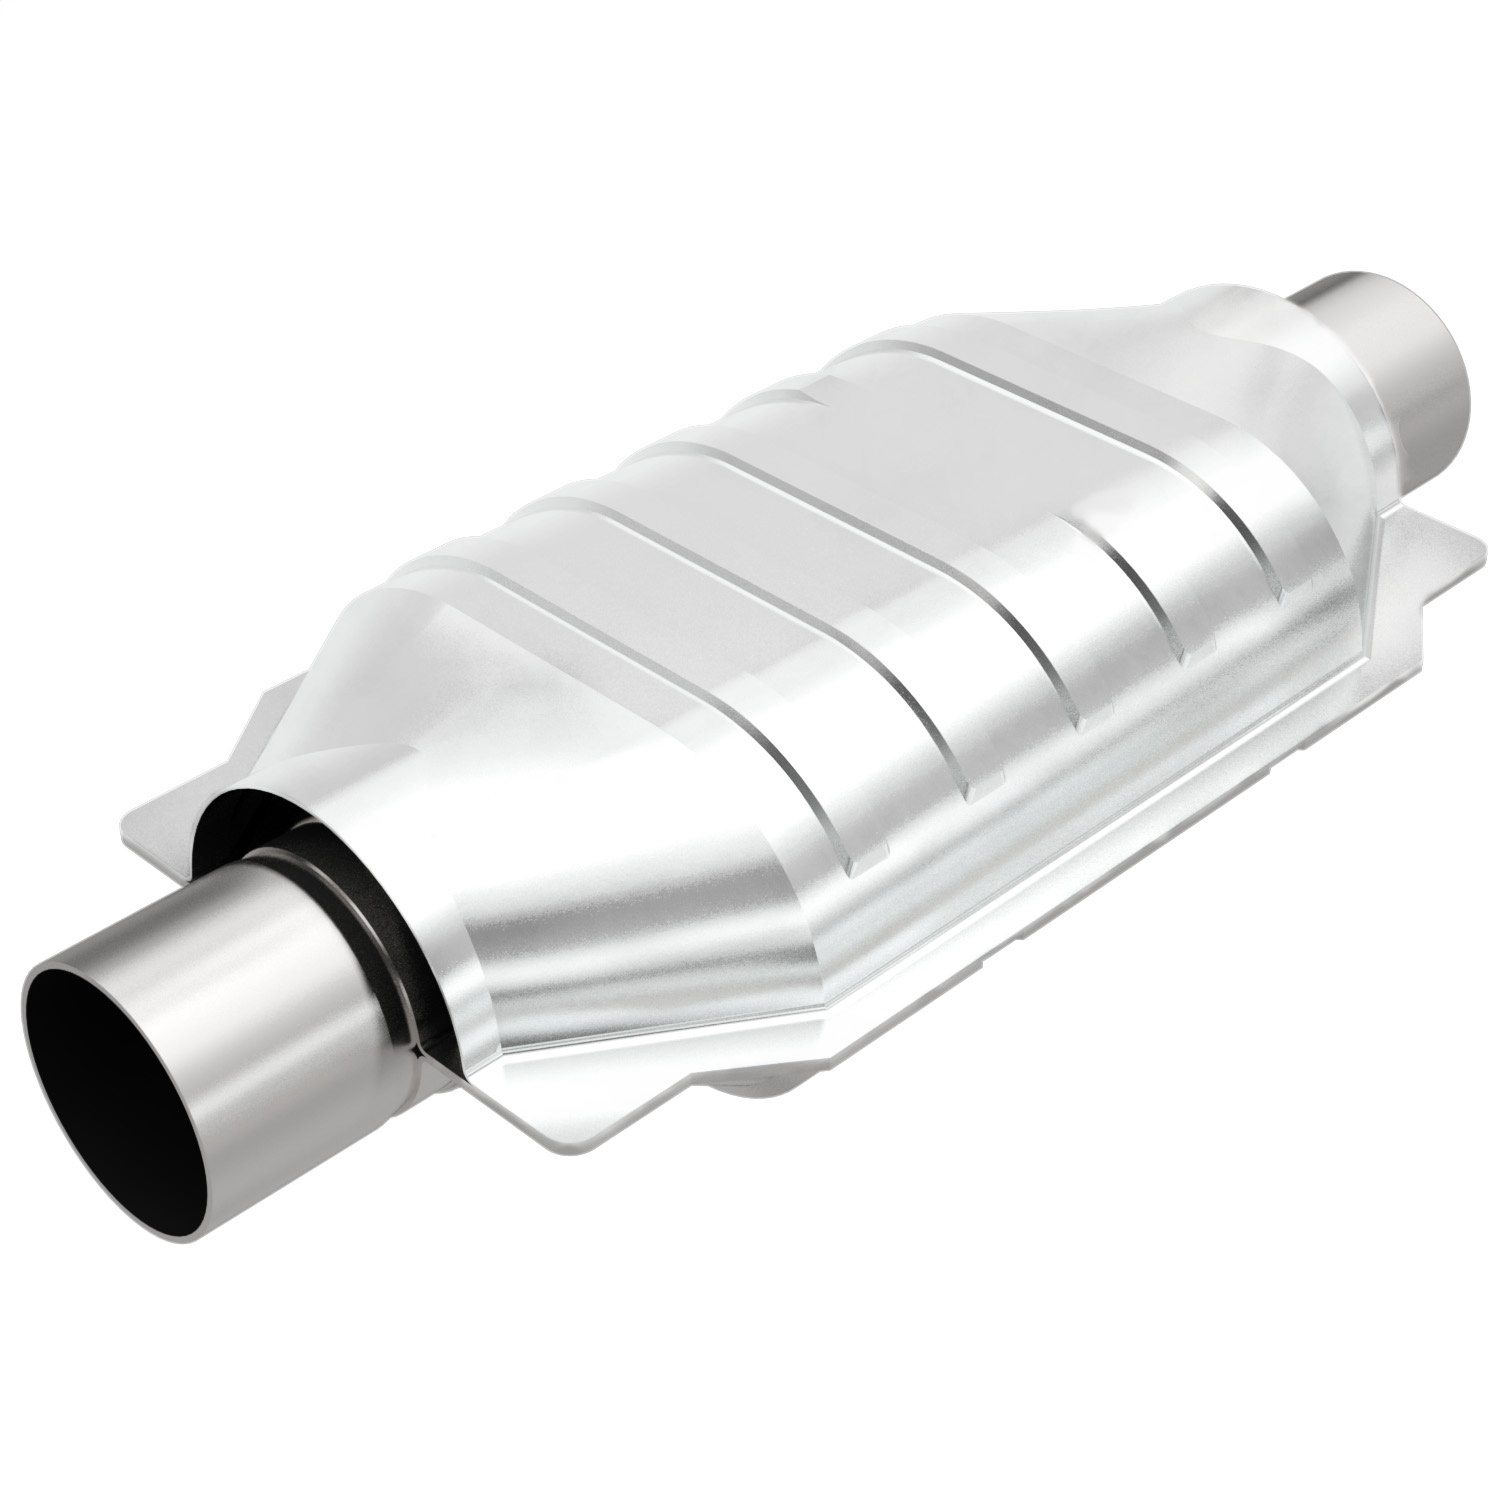 MagnaFlow Exhaust Products Catalytic Converter (445009)